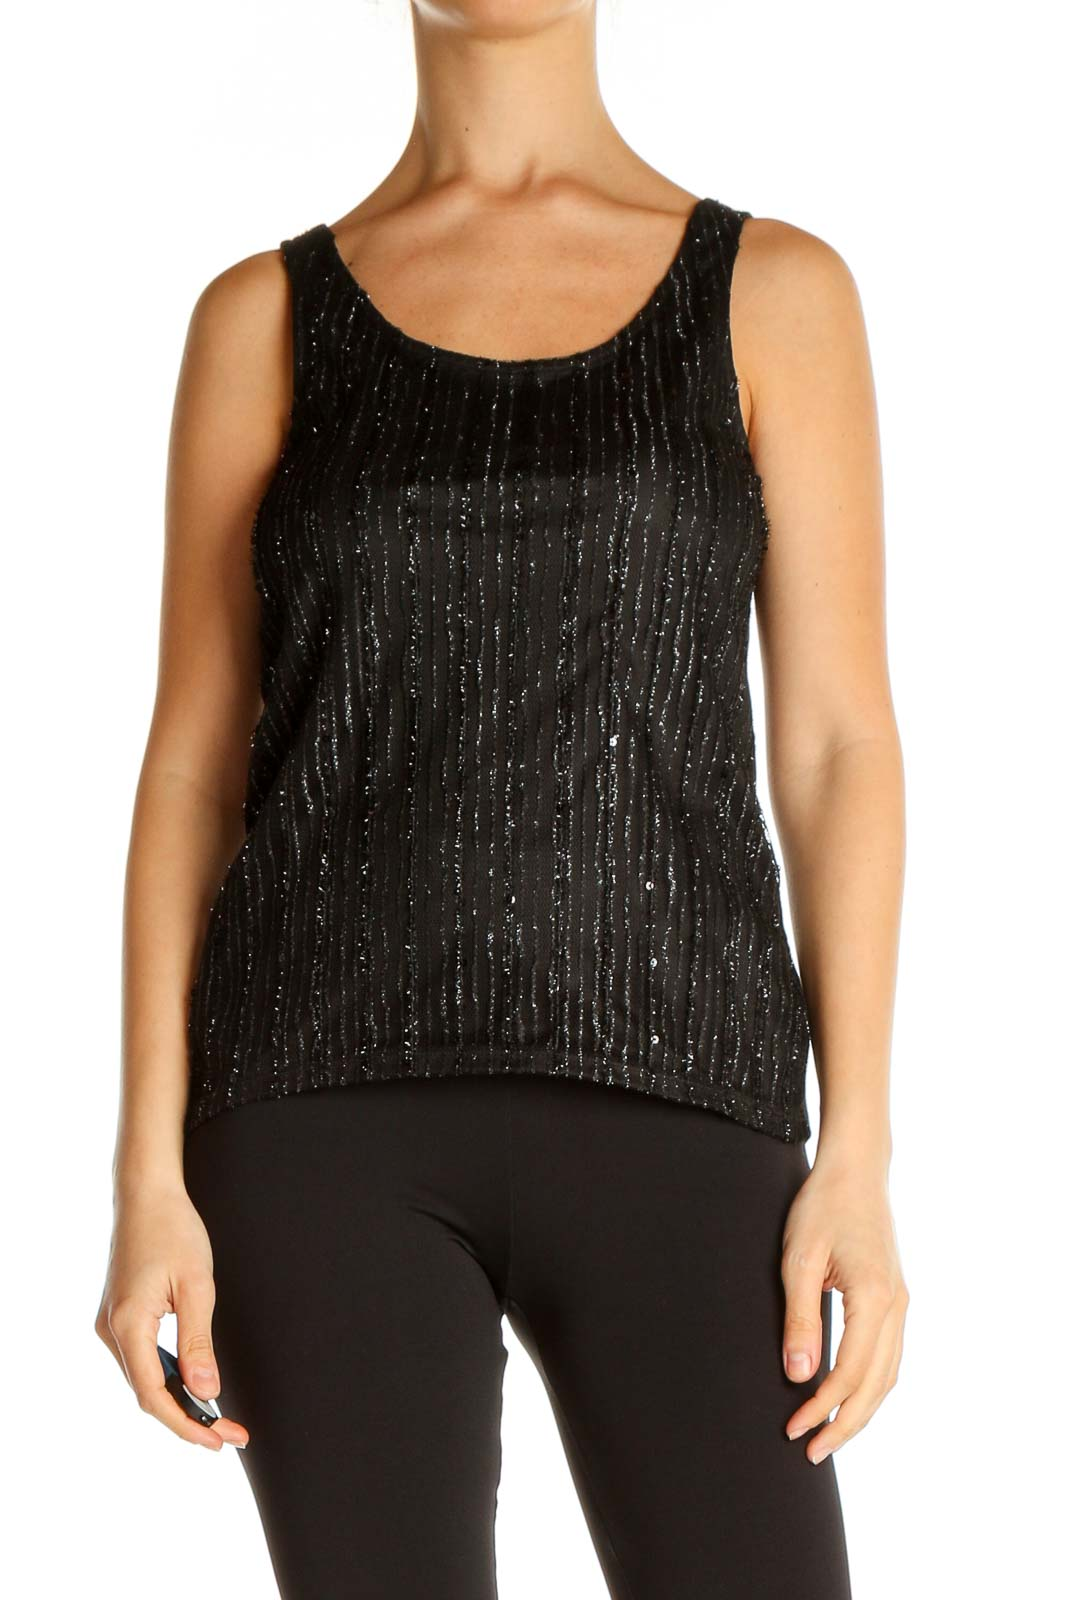 Black Textured Chic Tank Top Front